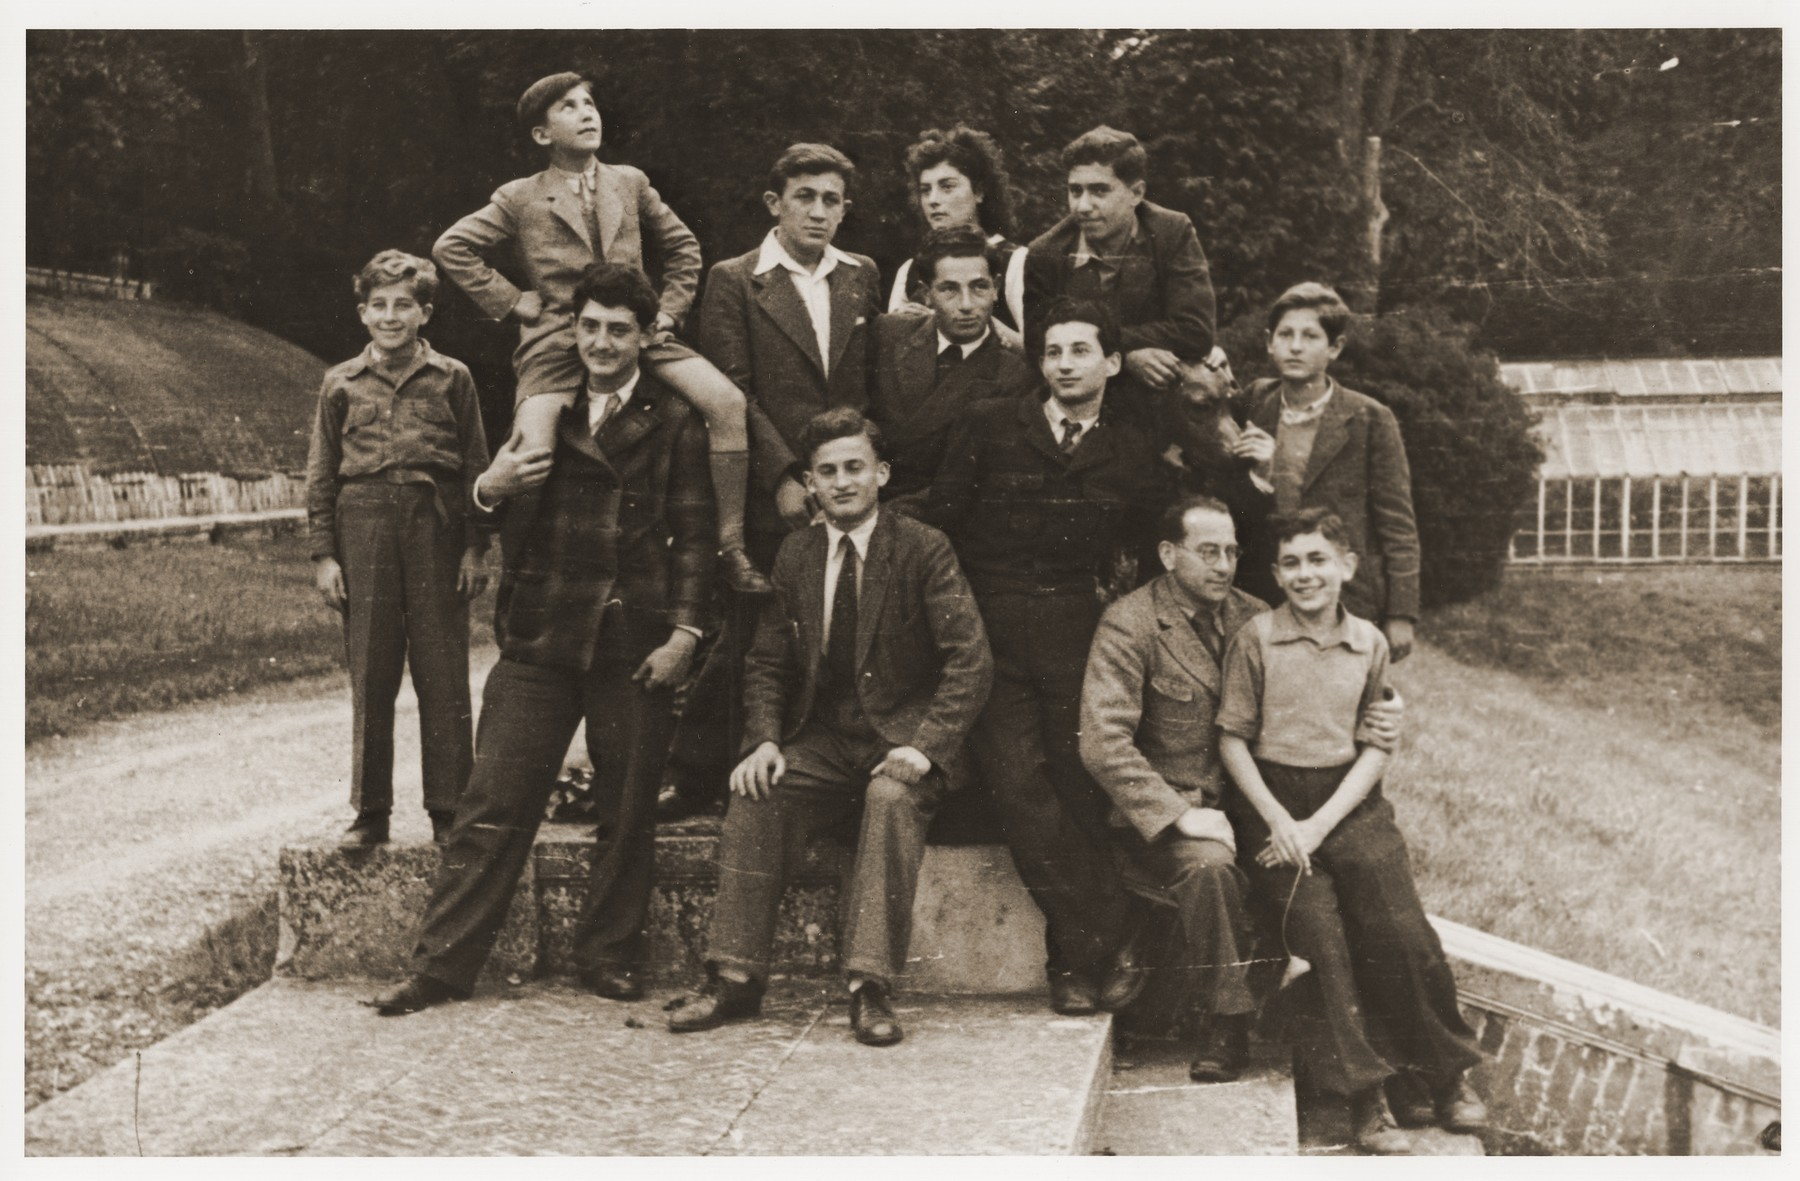 Jewish youth pose with their counselors in the yard of the Rothschild's Château Ferrière, where they are attending a summer camp sponsored by the OSE (Oeuvre de secours aux Enfants).   Pictured seated in the front row from left to right are Usher; Manfred Reingewitz and Romek Wajsman.  Standing from left to right are Abram Schilcott; Ralph Lewen with Salek Finkelstein on his shoulders; Natek Klugman; Miriam ?; Louis Harrison (in front of Miriam); Theodo (Bubi) Lowy (back, right) ; André ? (in front of Bubi-Lewi); and unknown.